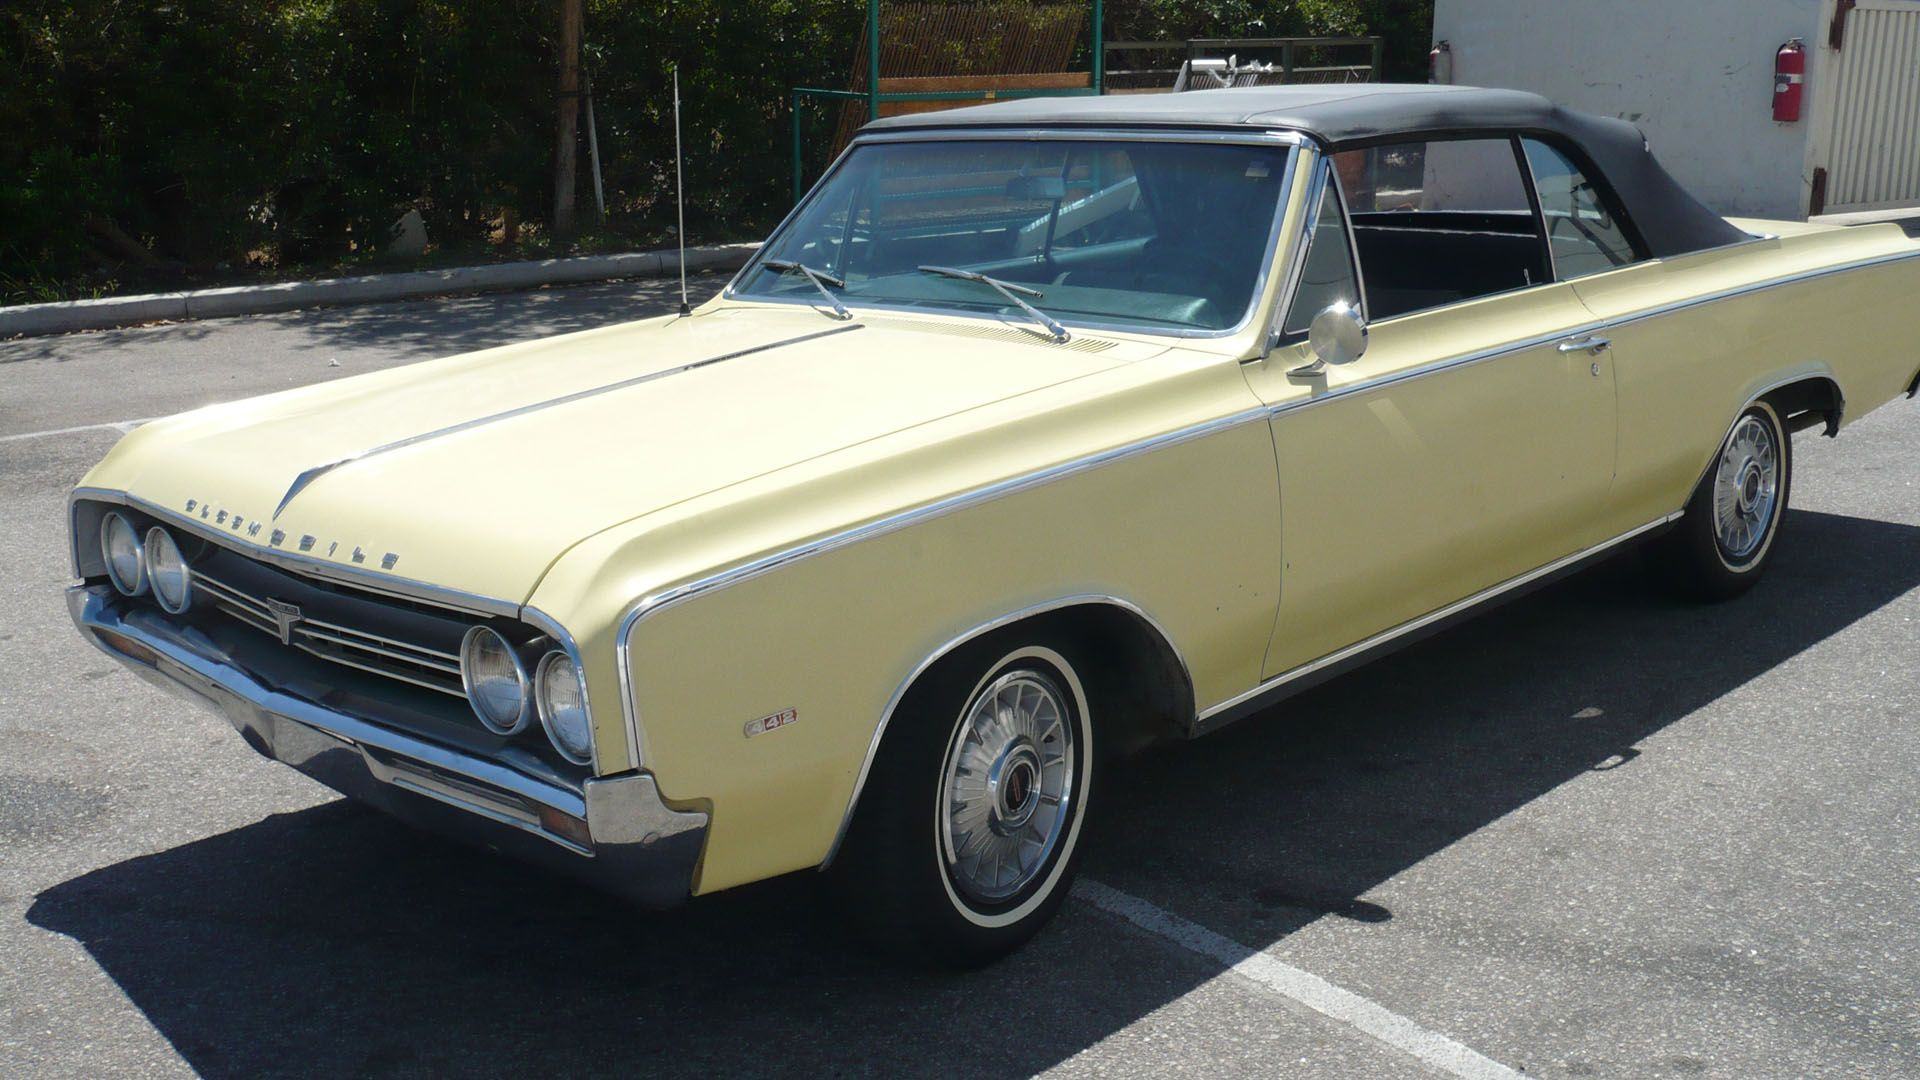 64 Olds 442 convertible | Cars I Love | Muscle cars, Antique